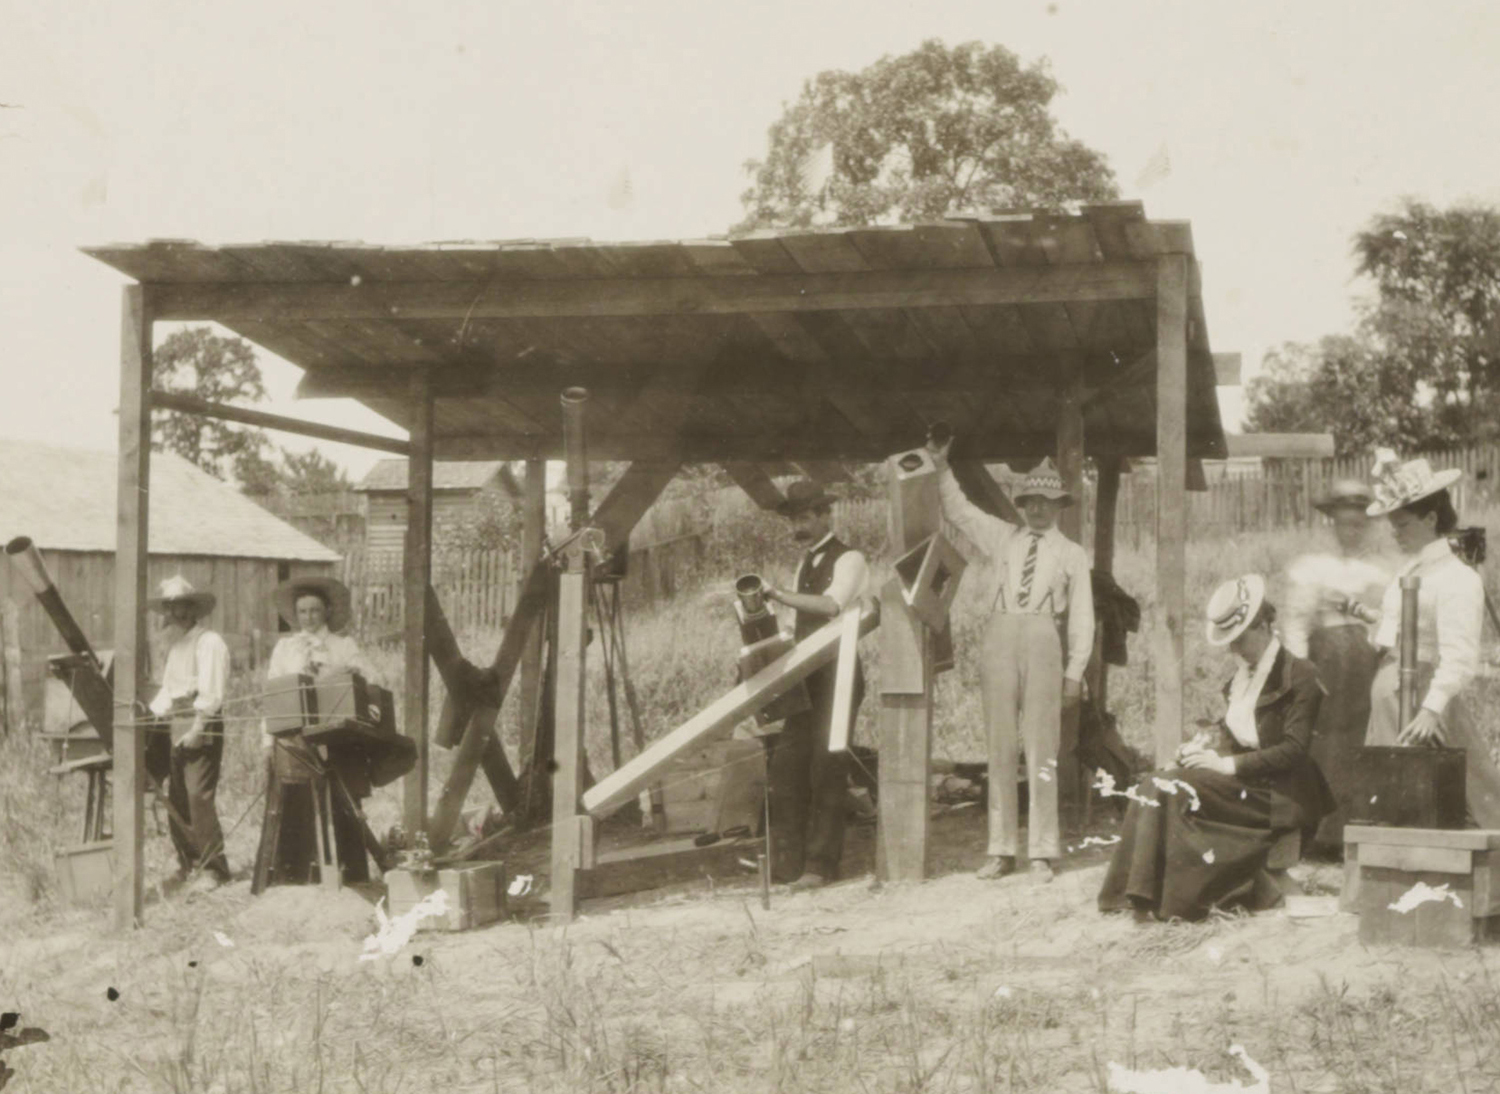 Photo 1: British Astronomical Association with their equipment in Wadesboro, NC. Black and white photo shows men and women in Victorian era clothing outside during daytime